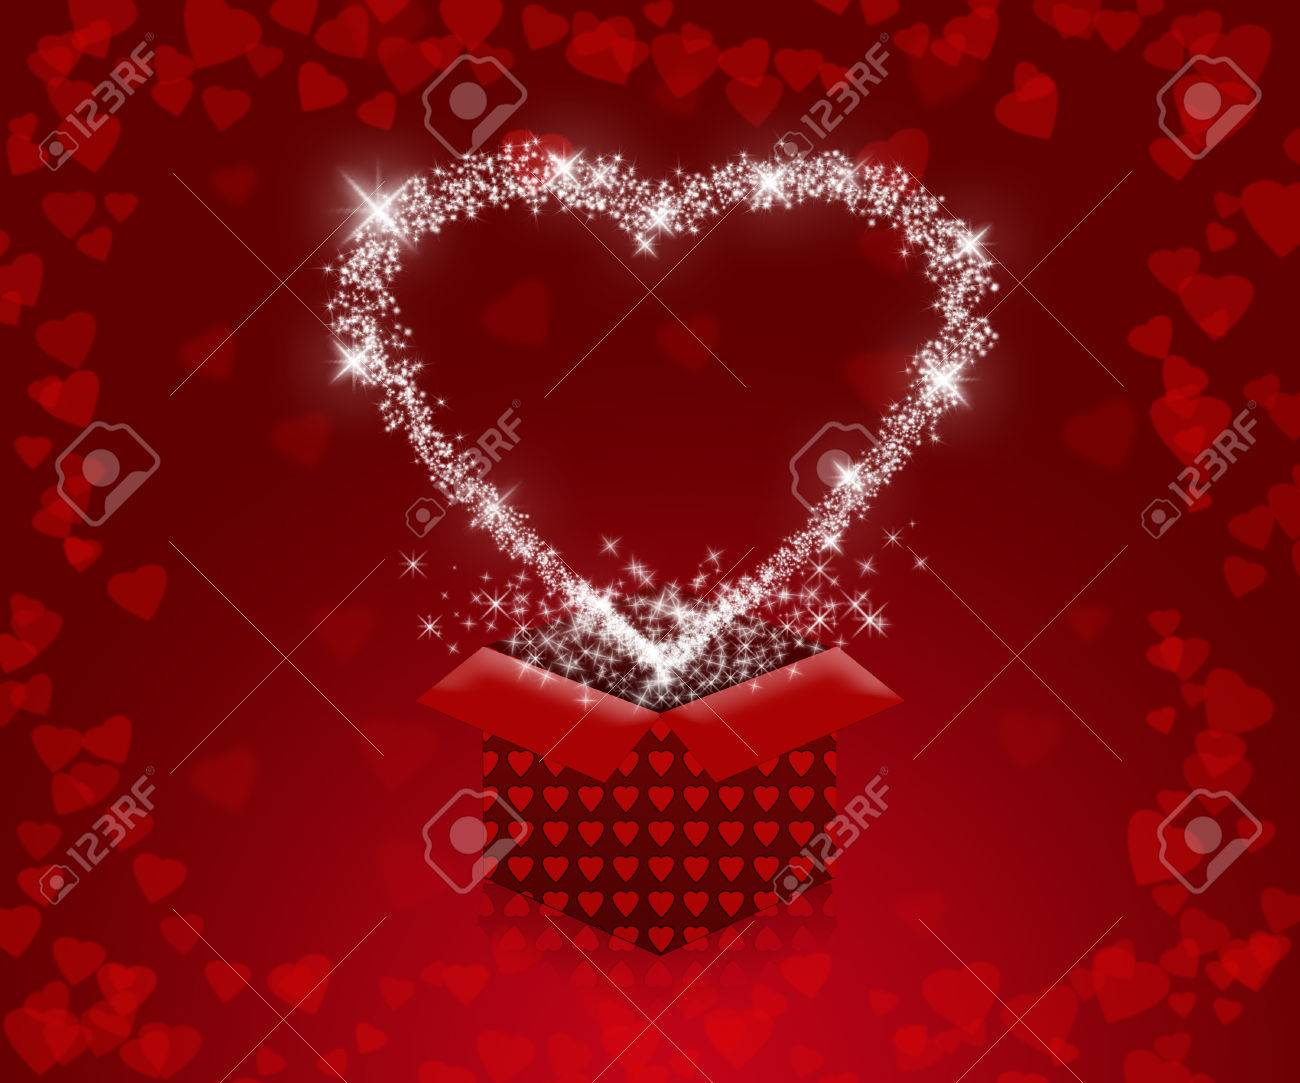 background with red hearts and gift box to valentine's day. love